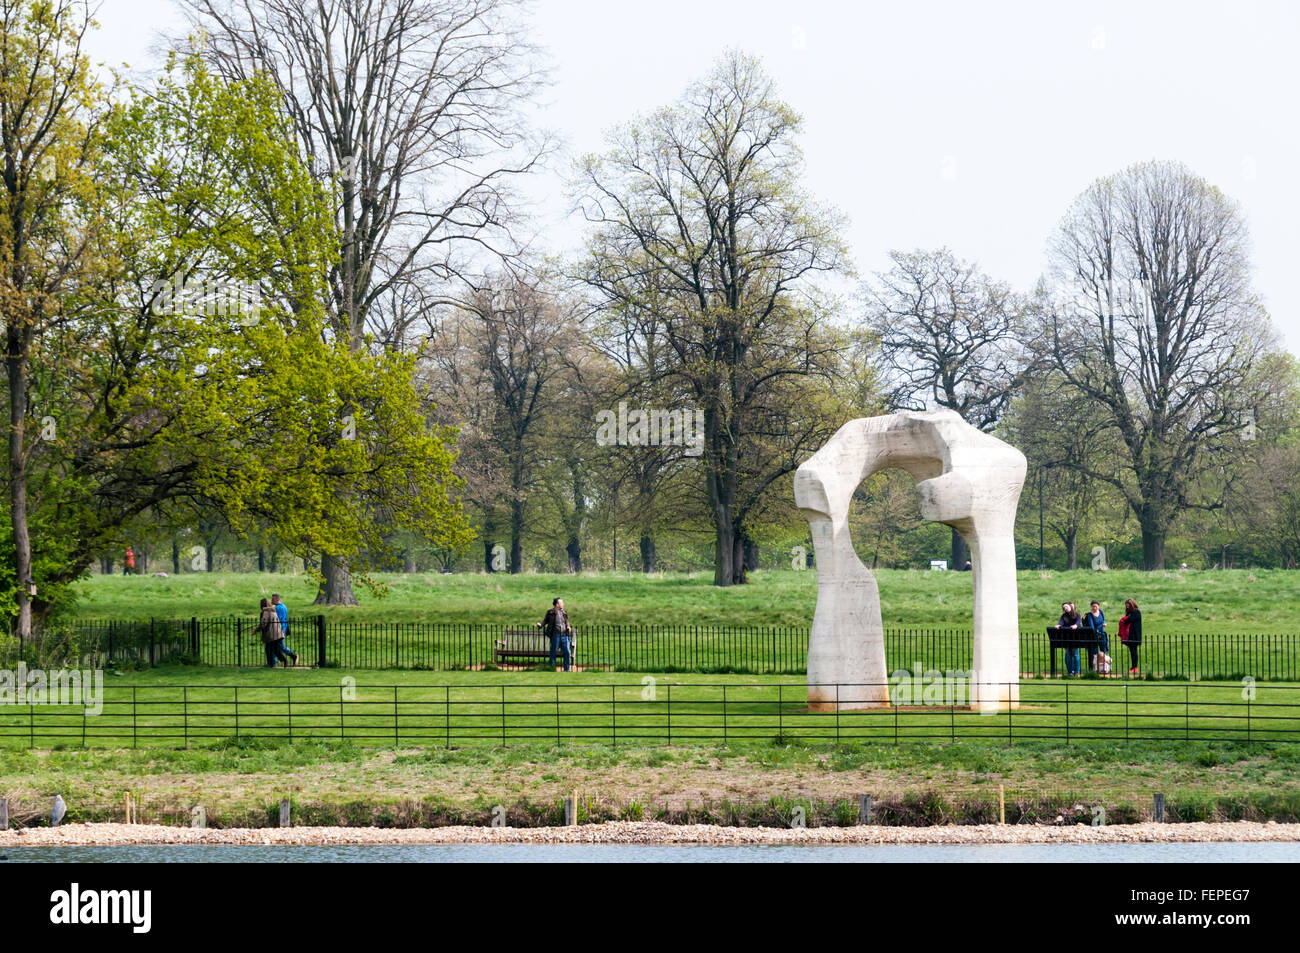 The Arch by Henry Moore in Kensington Gardens, London. Stock Photo